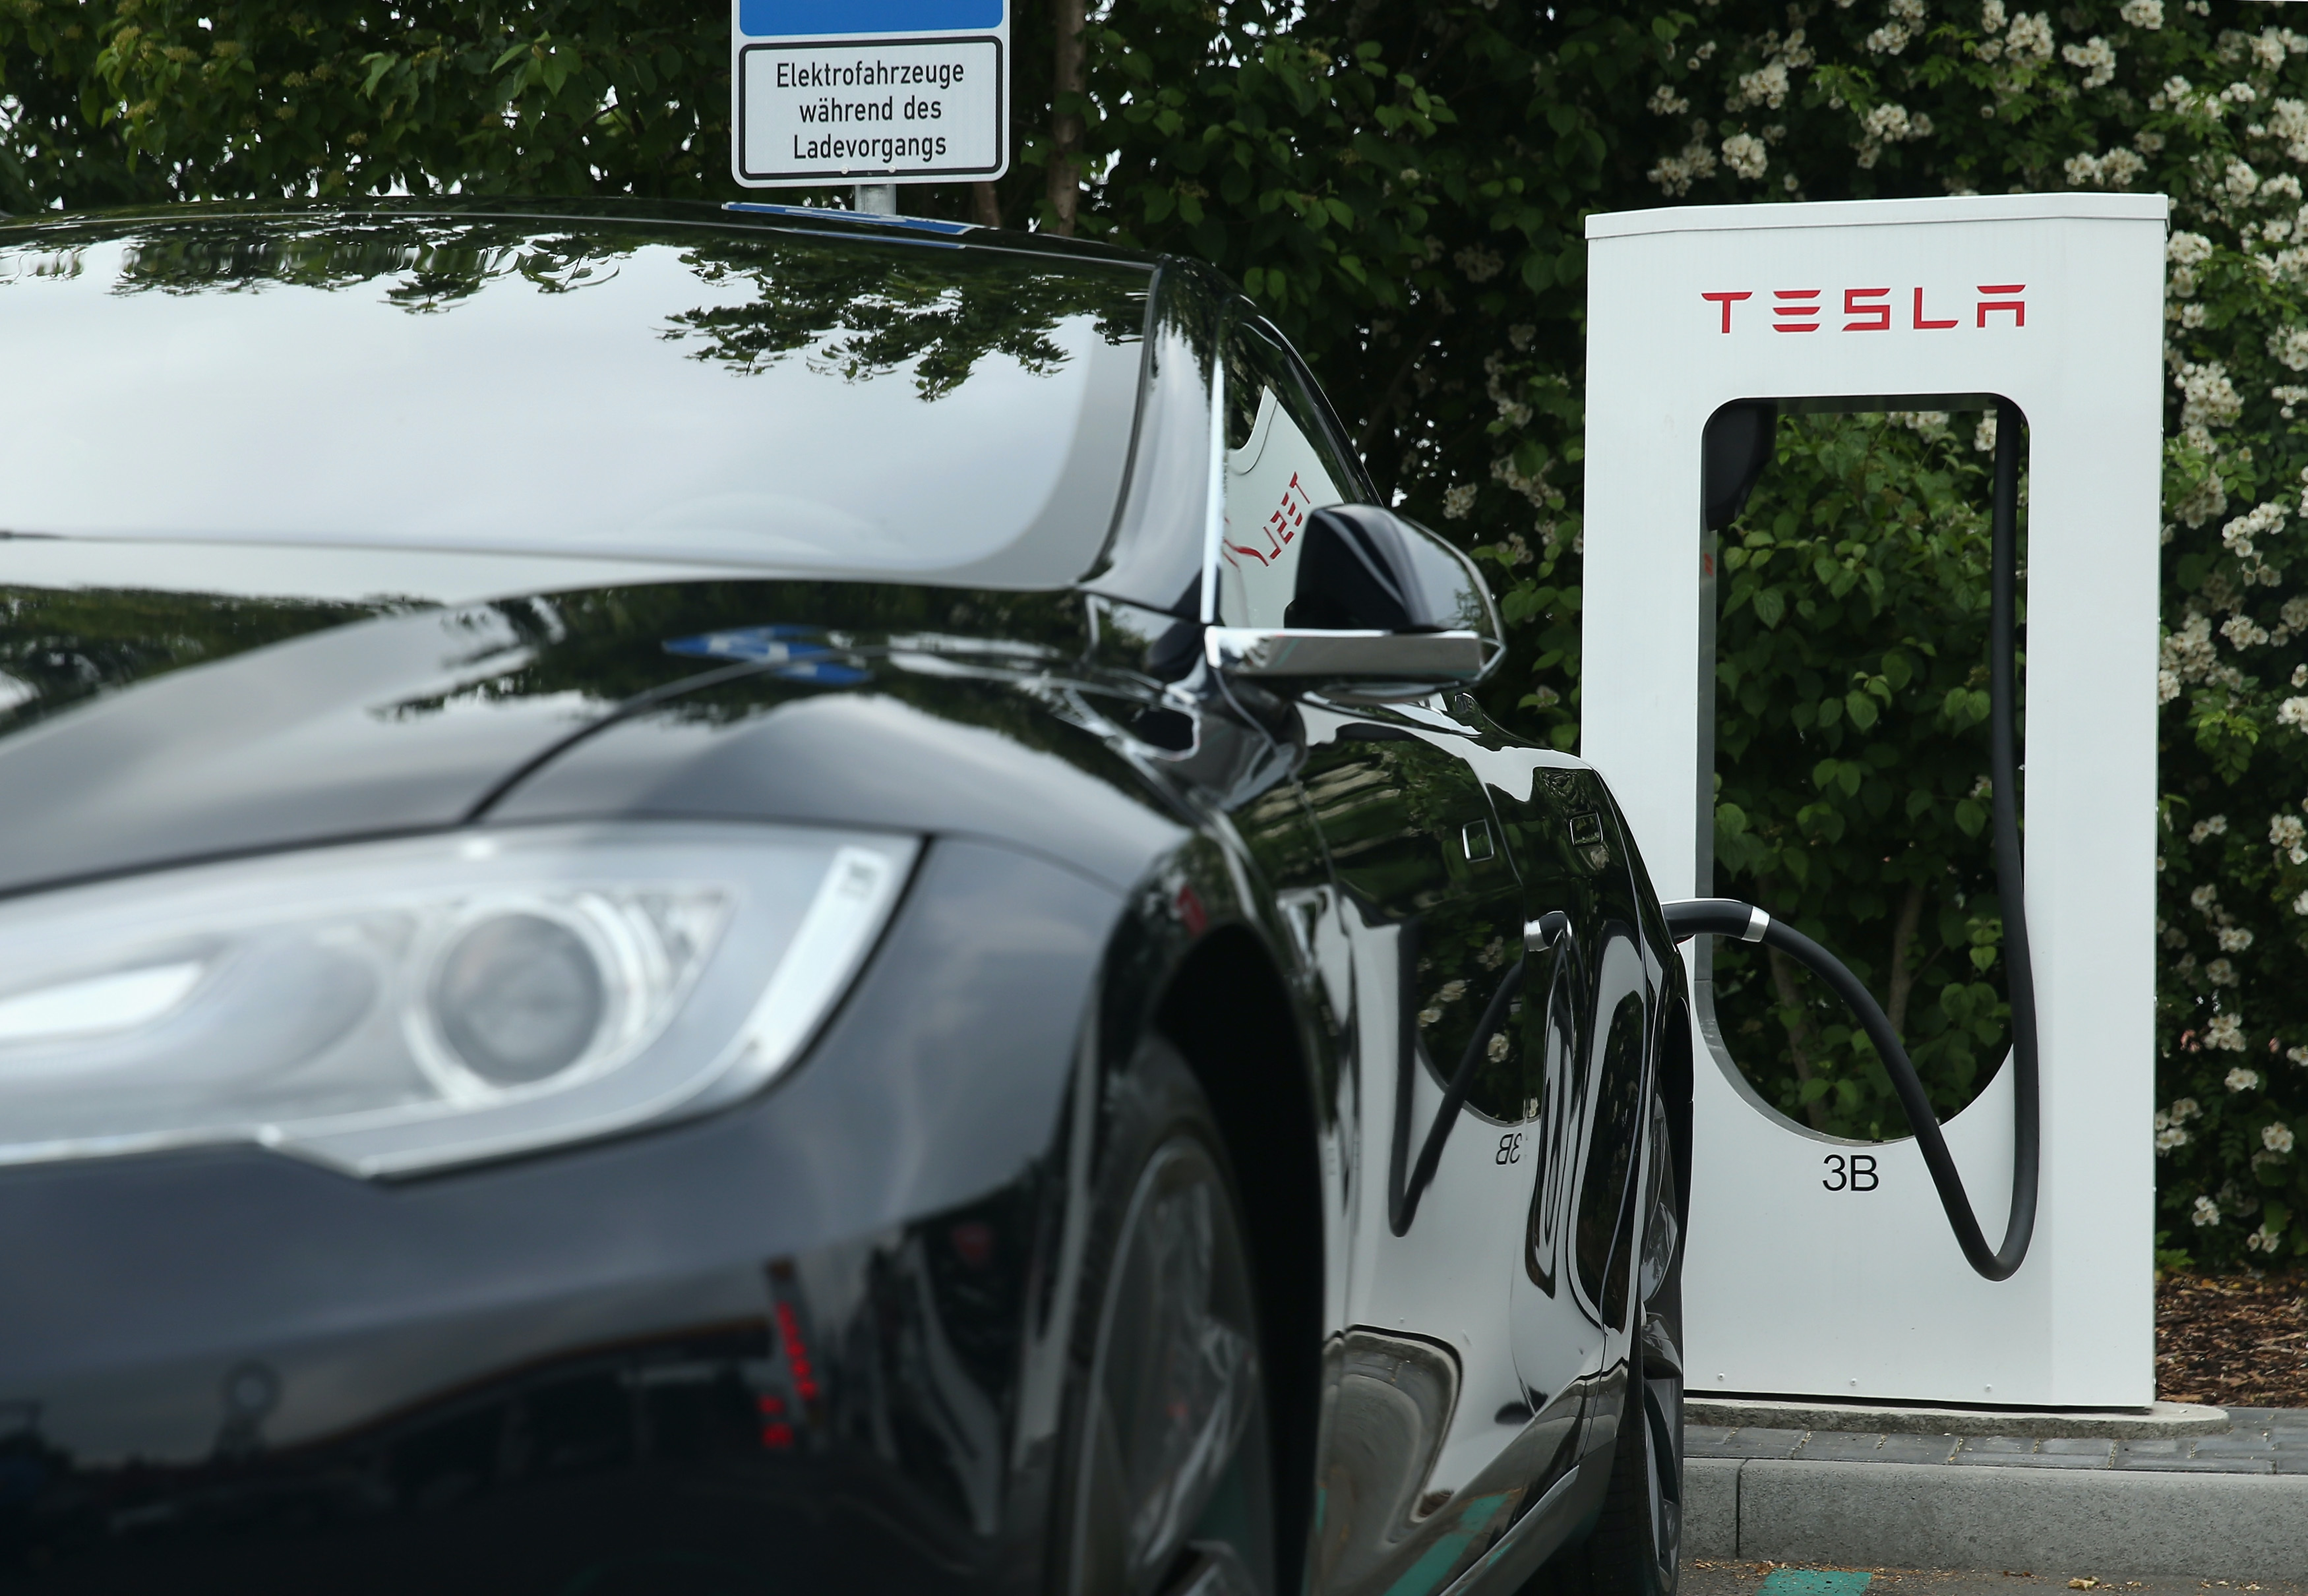 Car makers like Tesla have benefitted from Norway's support for electric vehicles.